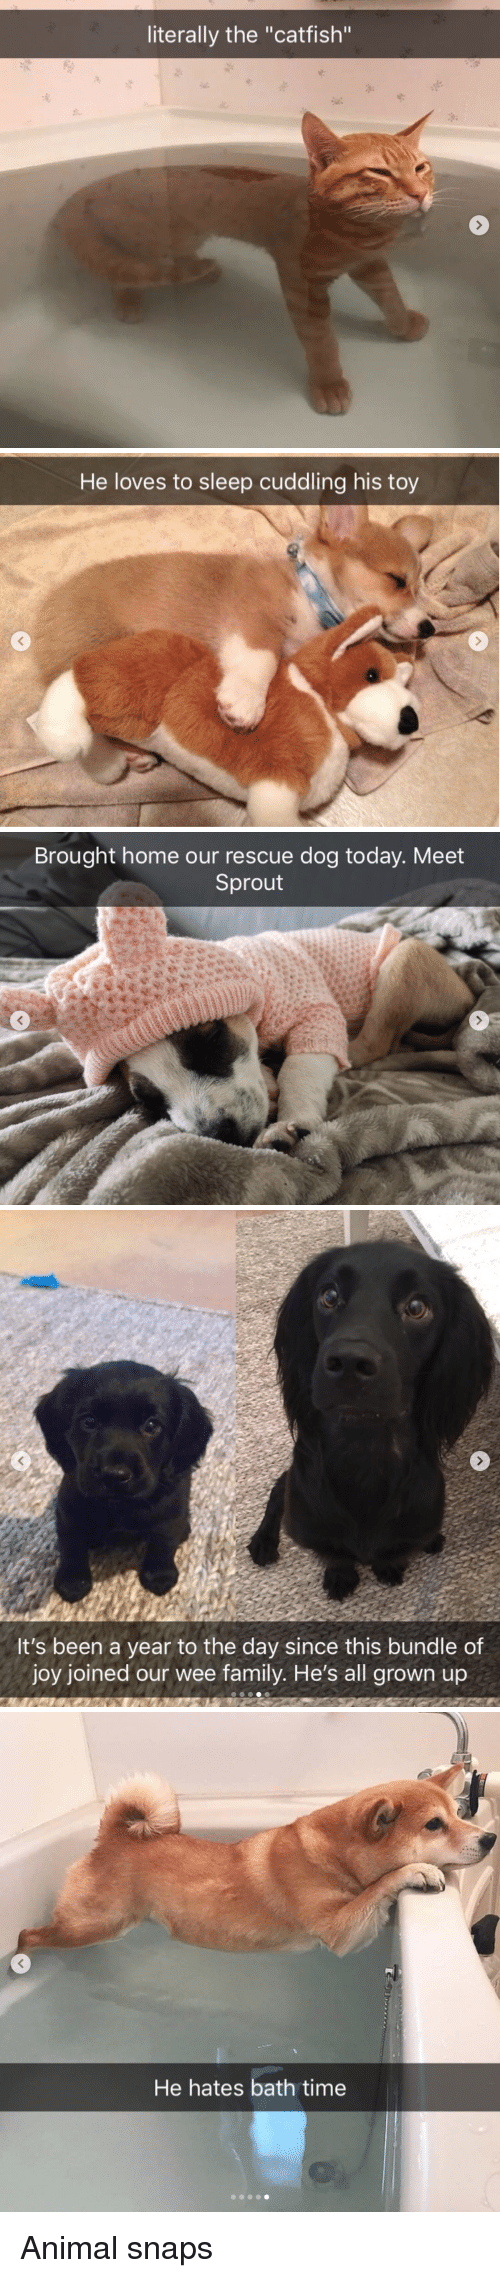 """Catfished: literally the """"catfish""""   He loves to sleep cuddling his toy   Brought home our rescue dog today. Meet  Sprout   It's been a year to the day since this bundle of  joy joined our wee family. He's all grown up   He hates bath time Animal snaps"""